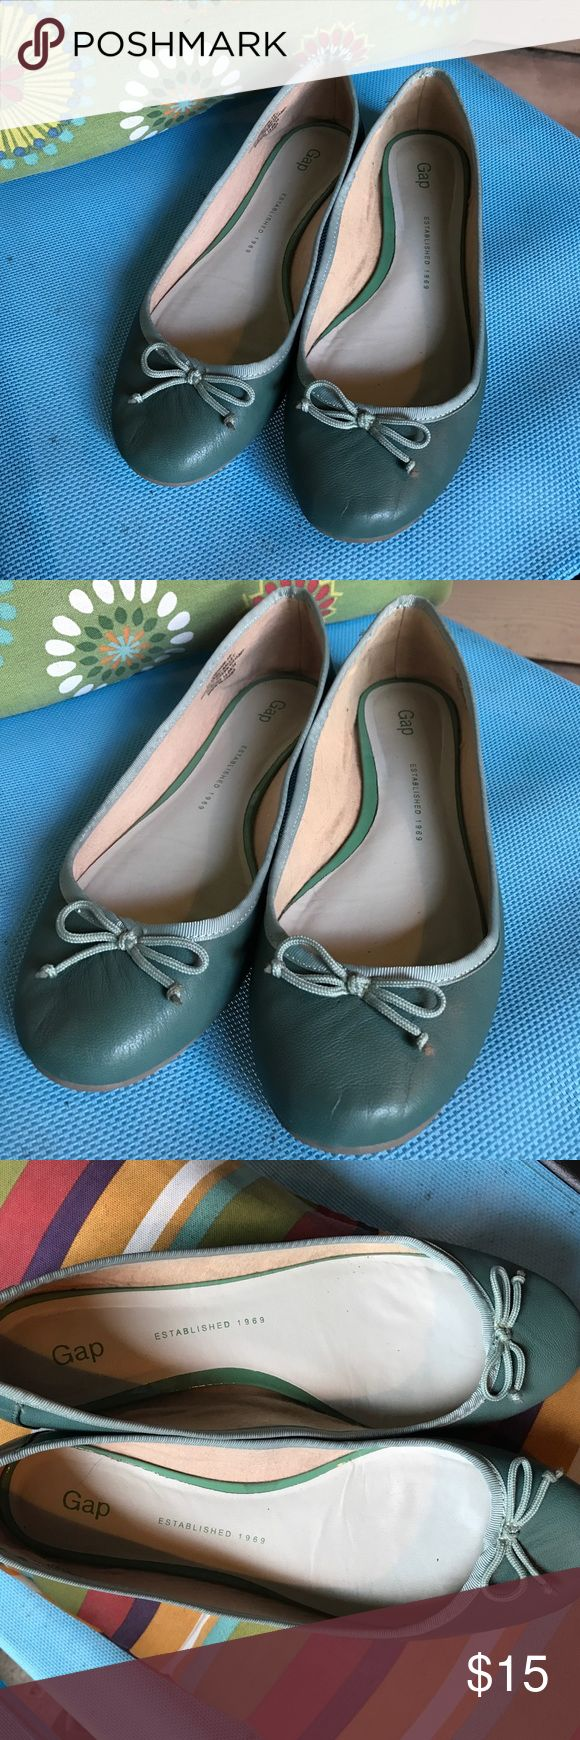 St Patrick's price 🍀 Gap green ballet pumps Reposhed as I did not like seeing my toe cleavage! However perfect size 9 fit. Hardly worn by previous seller which is why insides are in such good condition and only wear in bottoms from being on hard floors. These are green leather upper and manmade sole. GAP Shoes Flats & Loafers